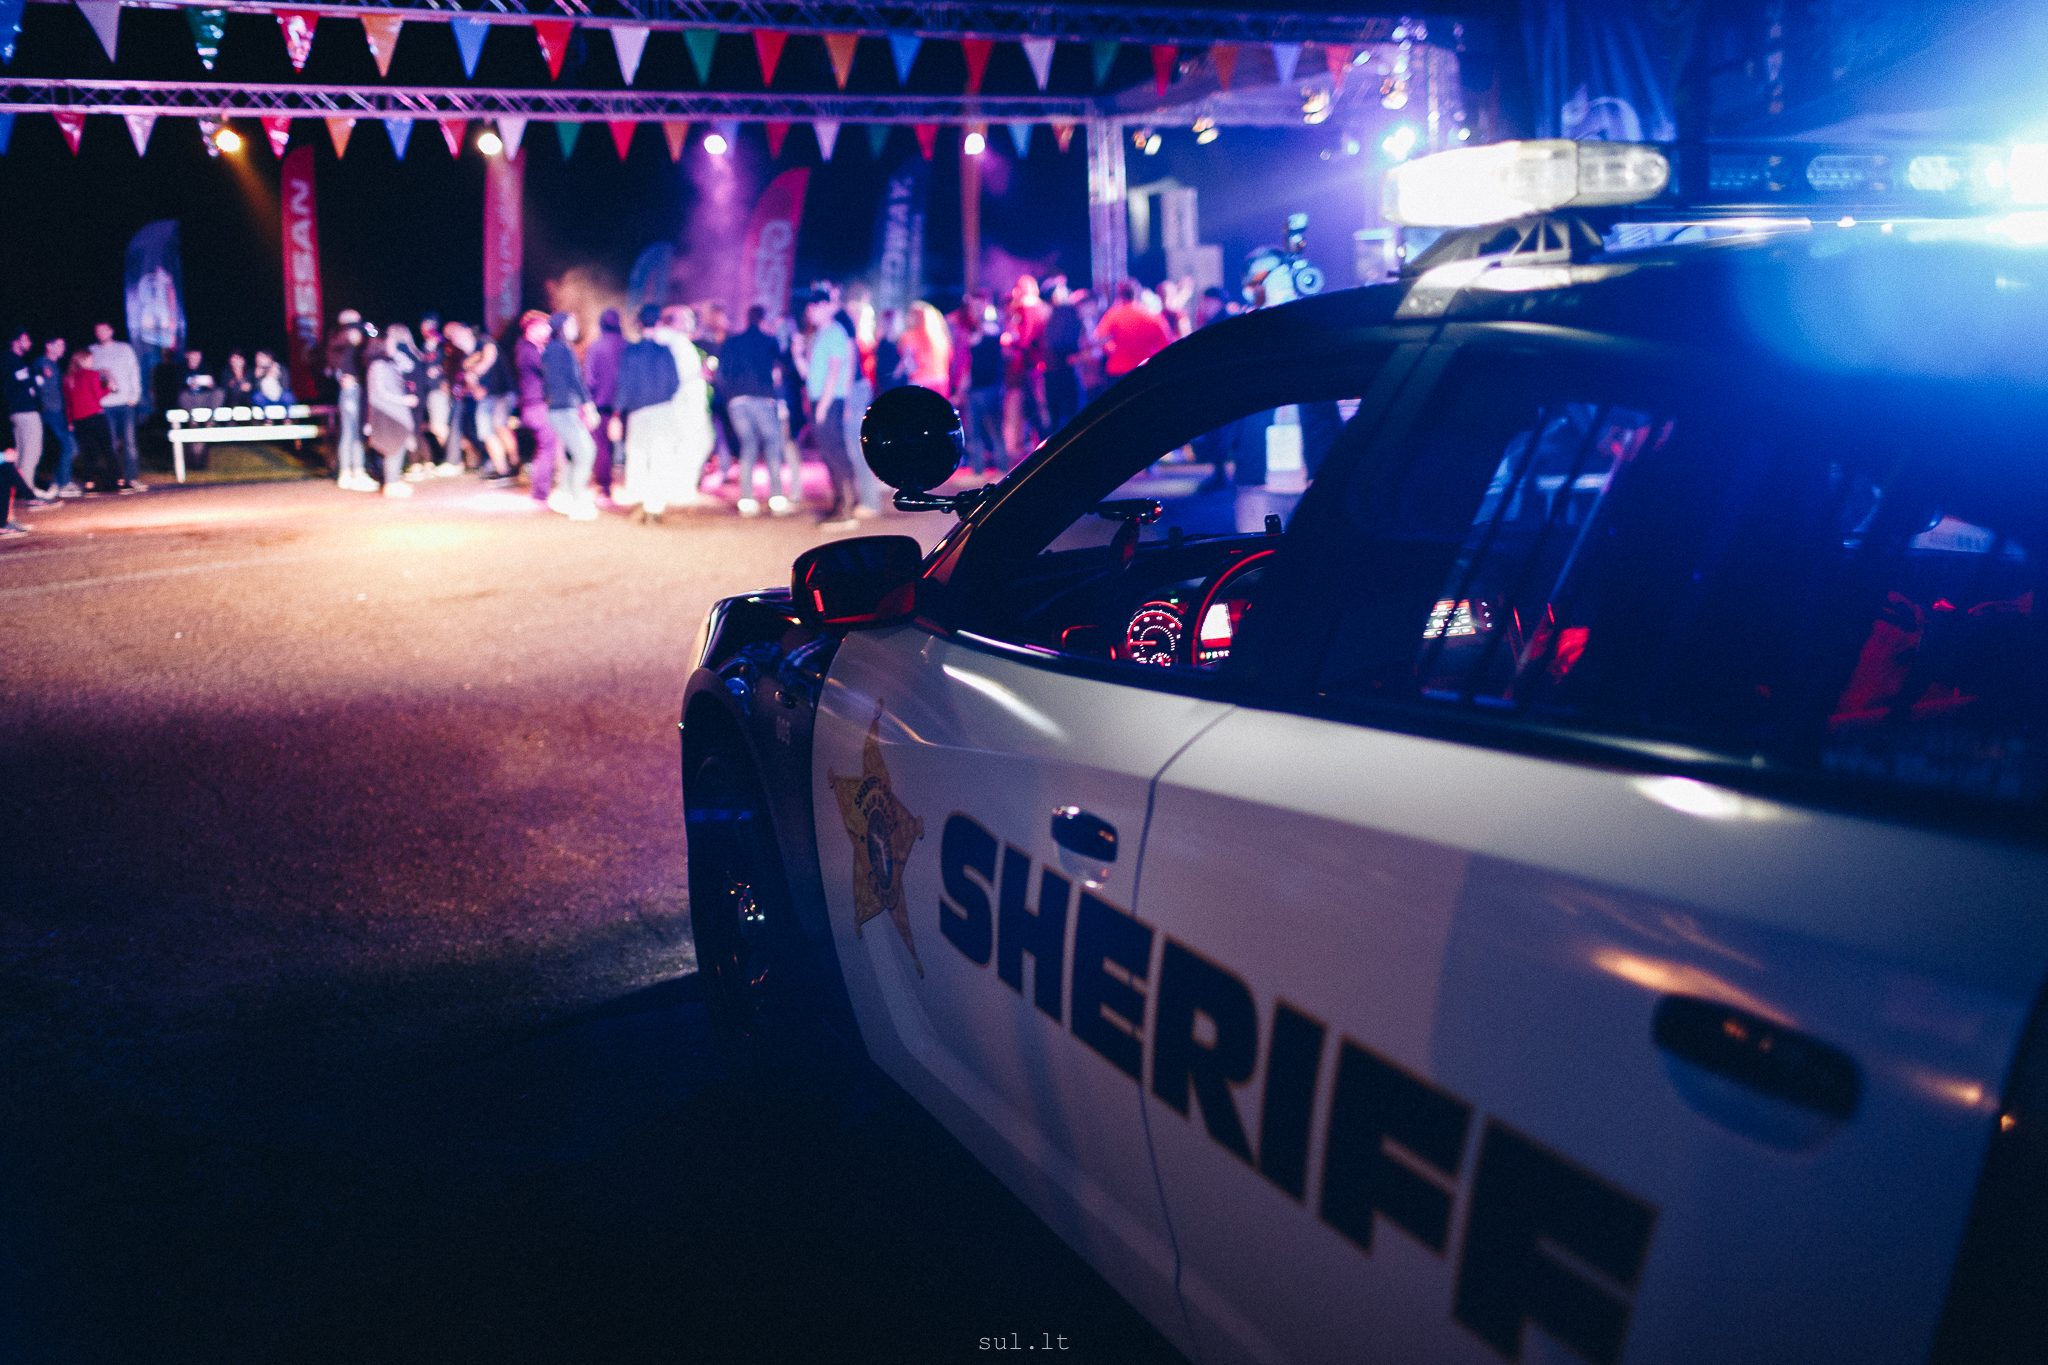 Sheriff comes to party